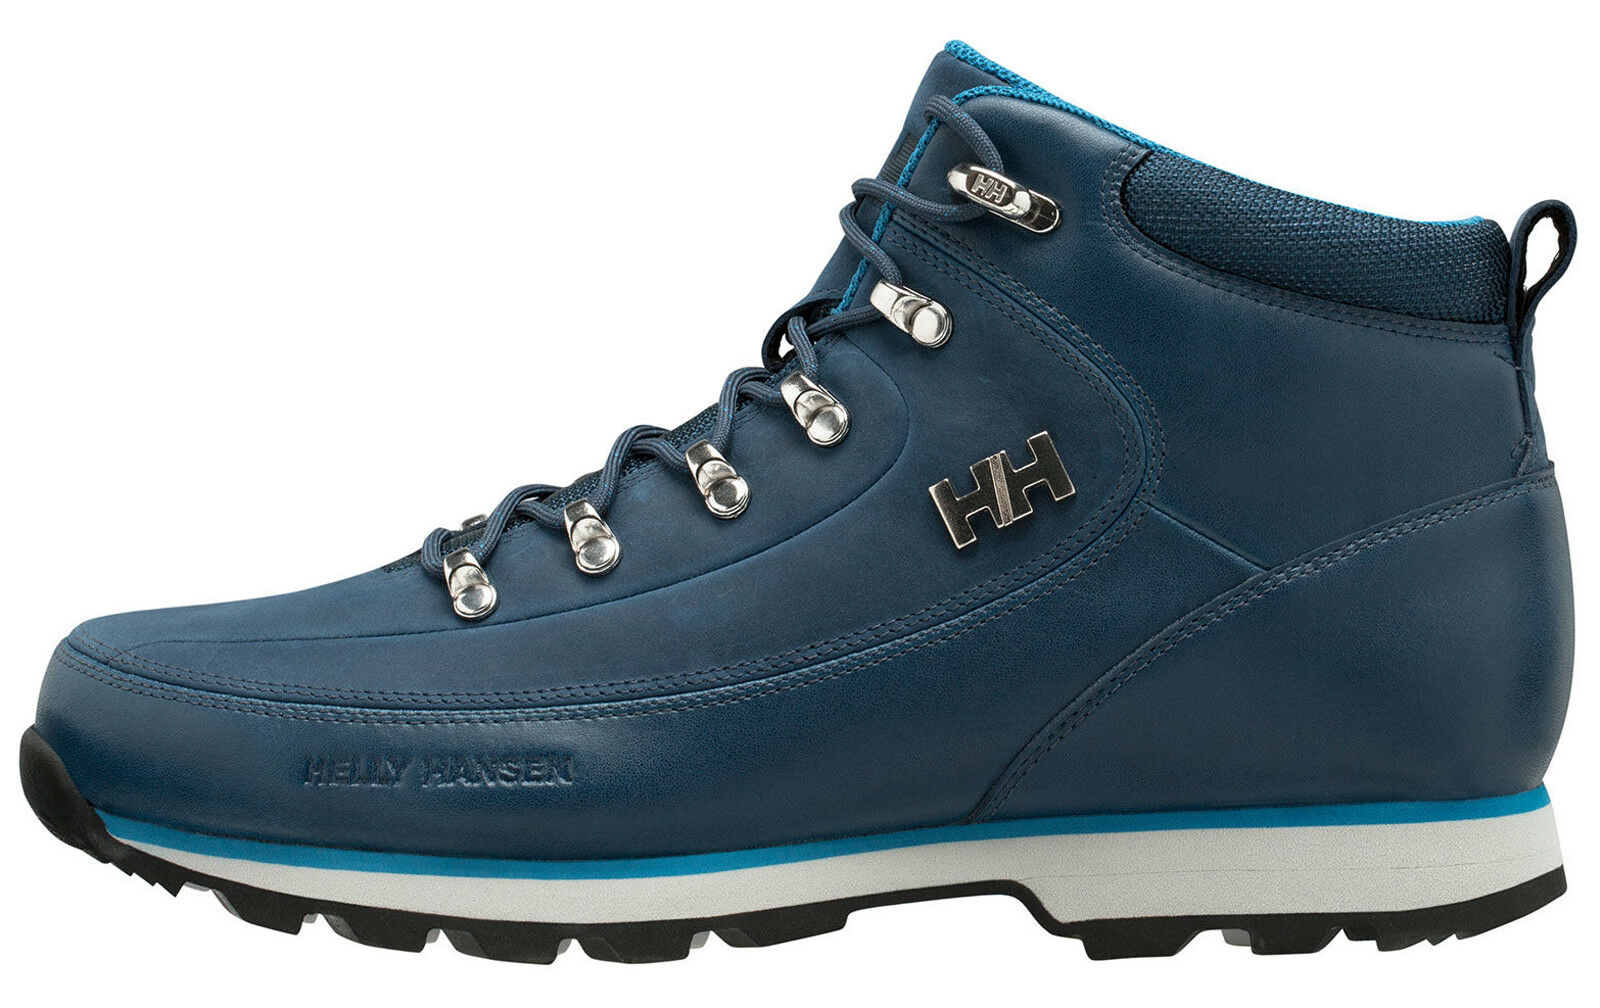 Helly Hansen  Herren Stiefel Forester Winter Ankle Ankle Ankle Walking Water Repellant Schuhes d70561